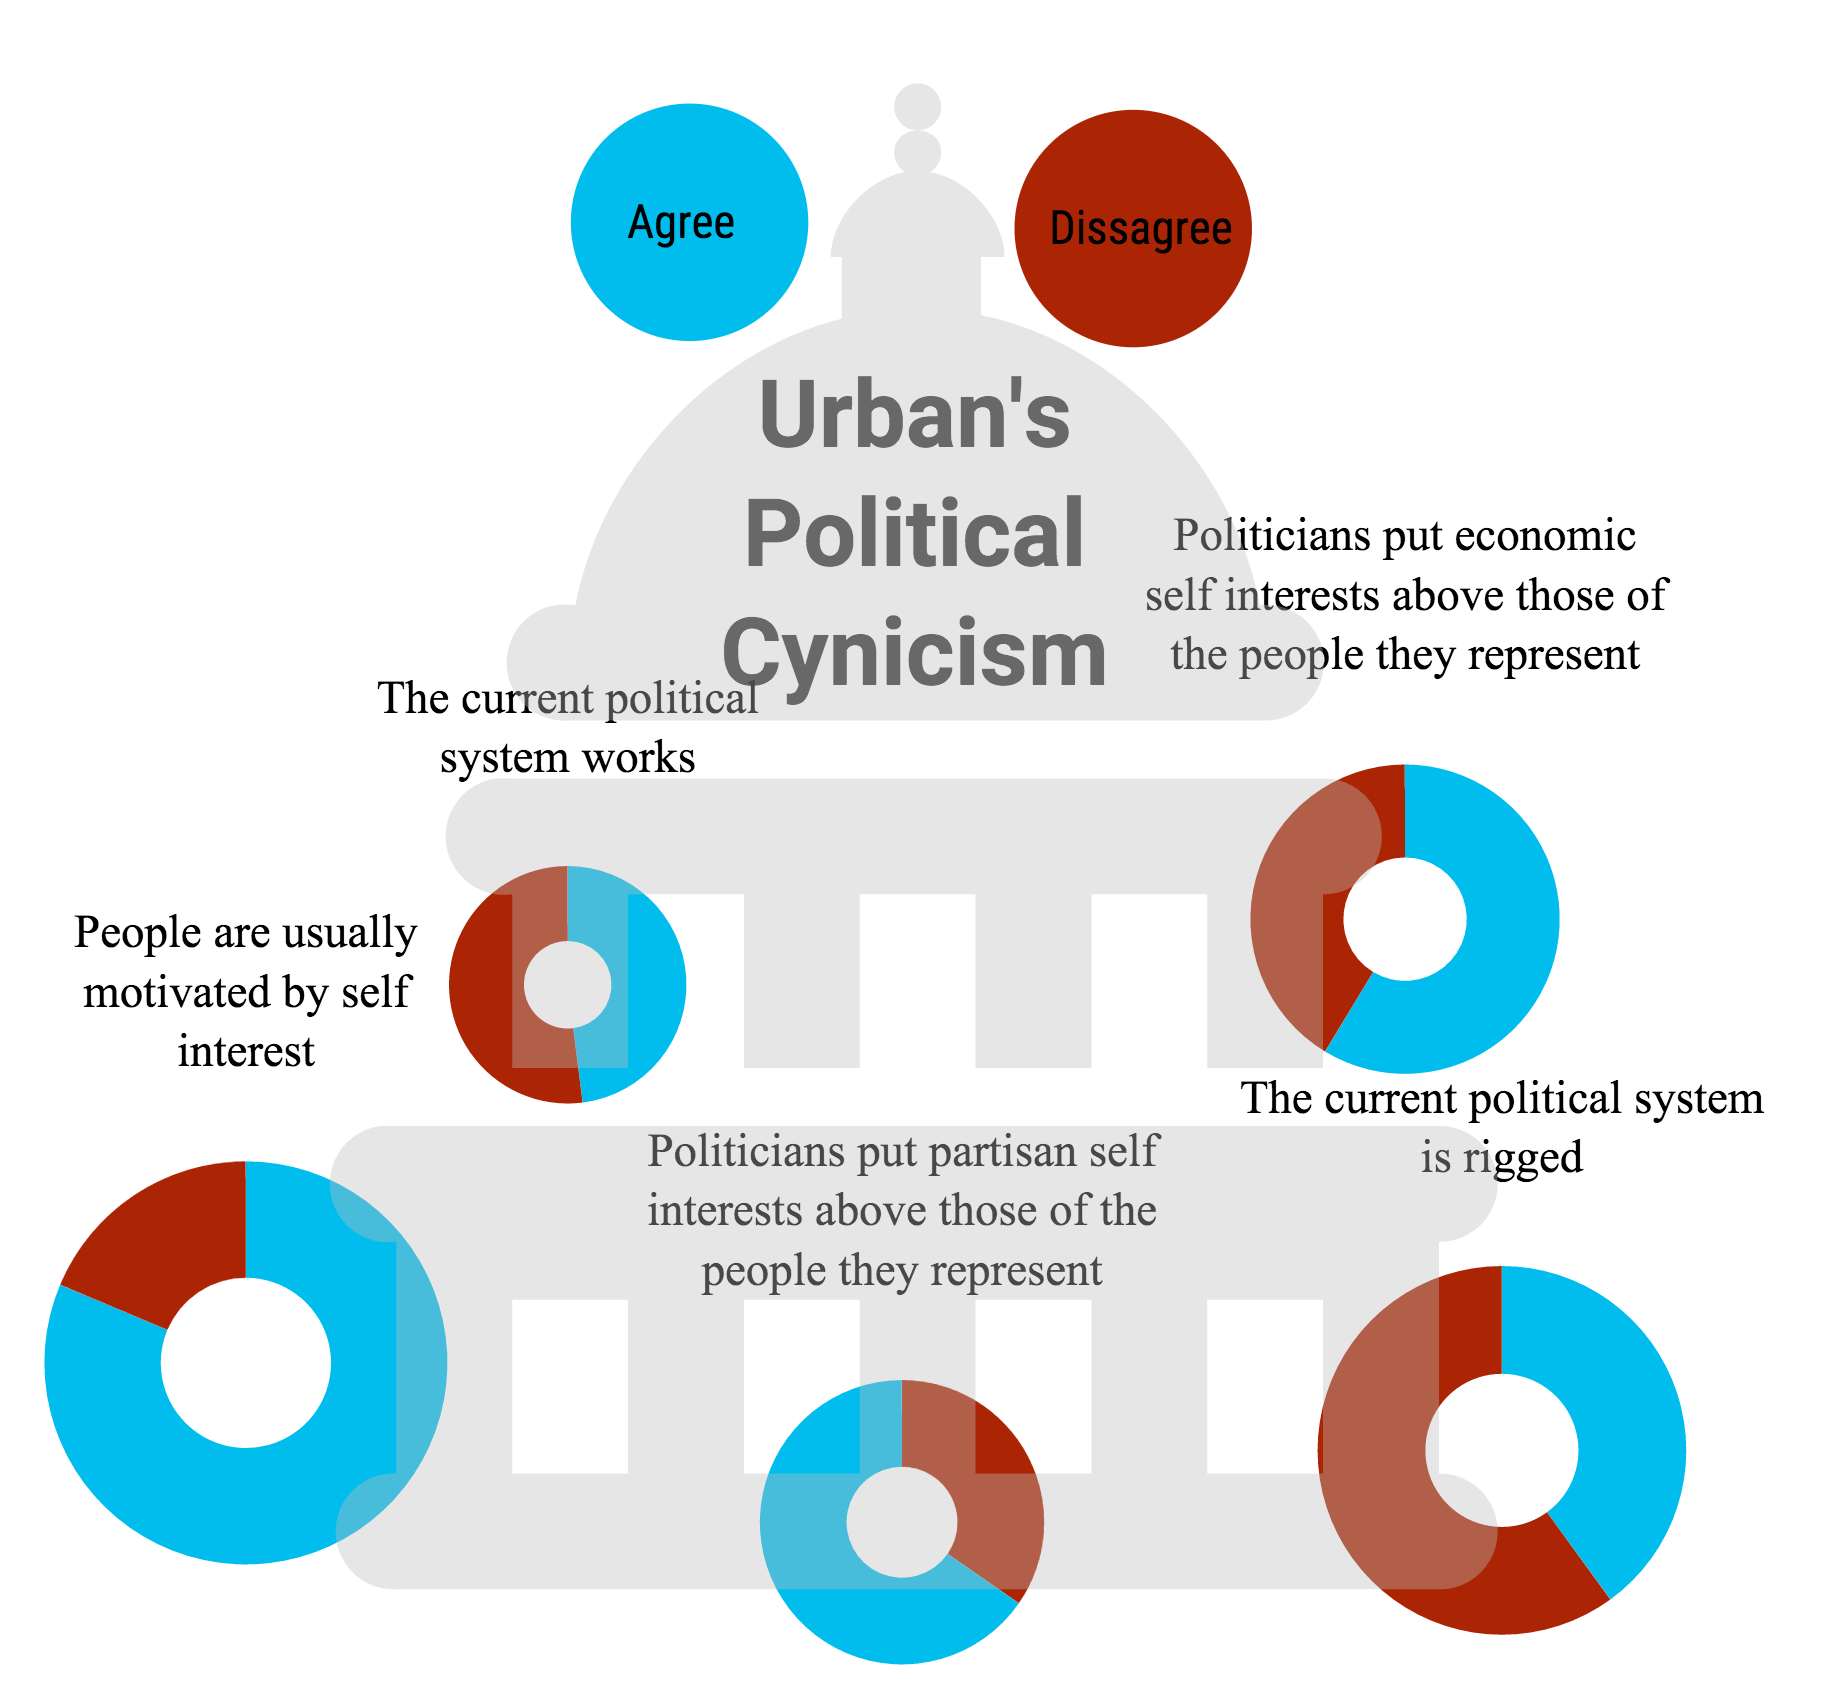 Infographic of measuring politically cynical responses at Urban, made by Kian Nassre.